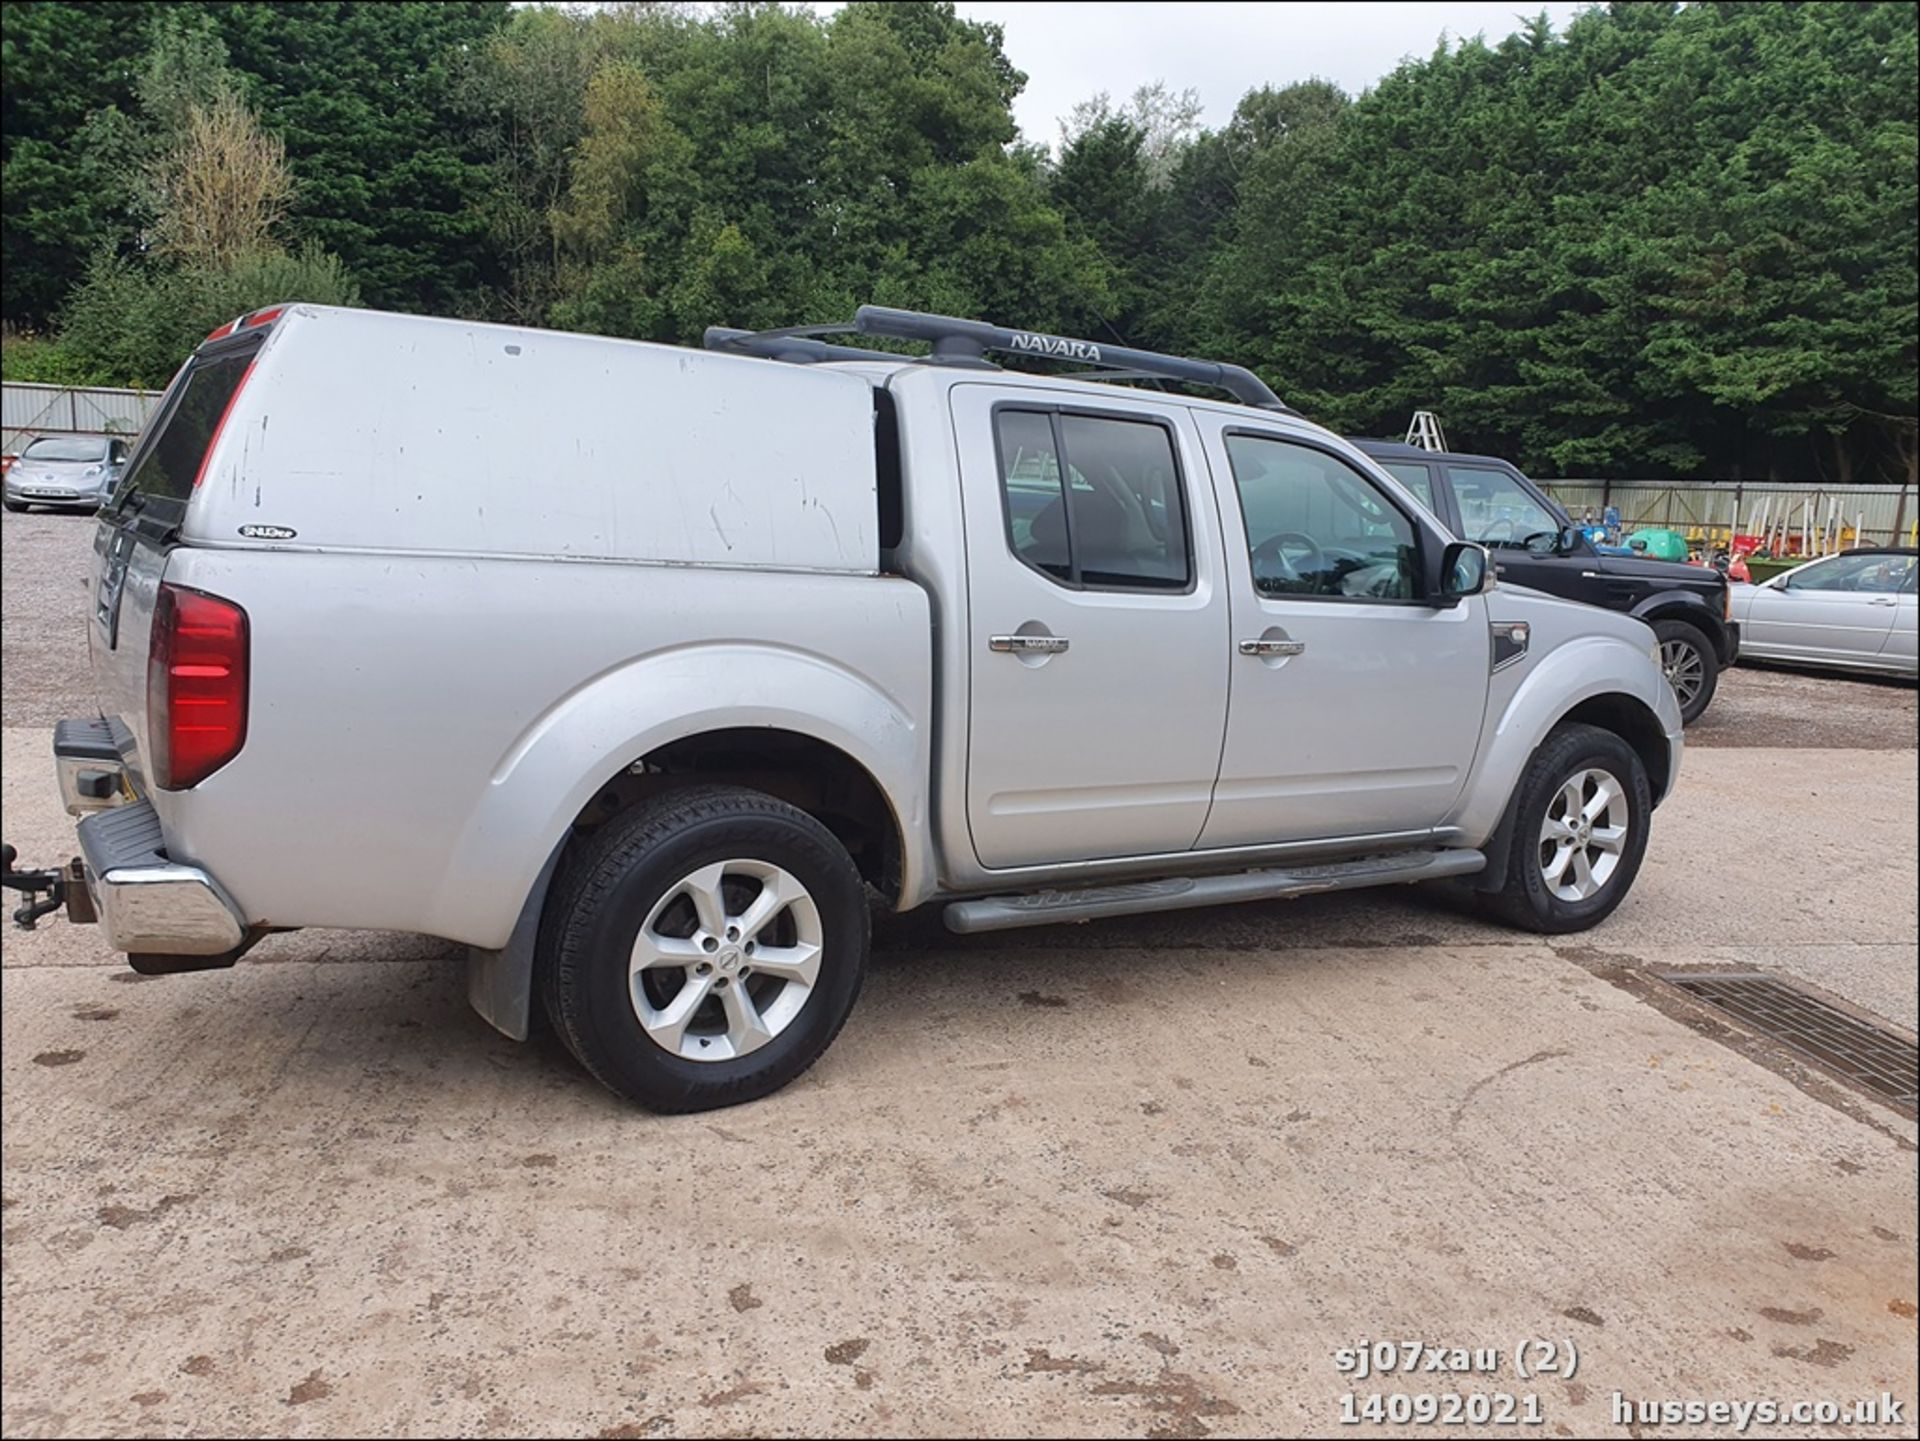 07/07 NISSAN NAVARA D/C OUTLAW DCI - 2488cc 4dr 4x4 (Silver, 166k) - Image 2 of 15